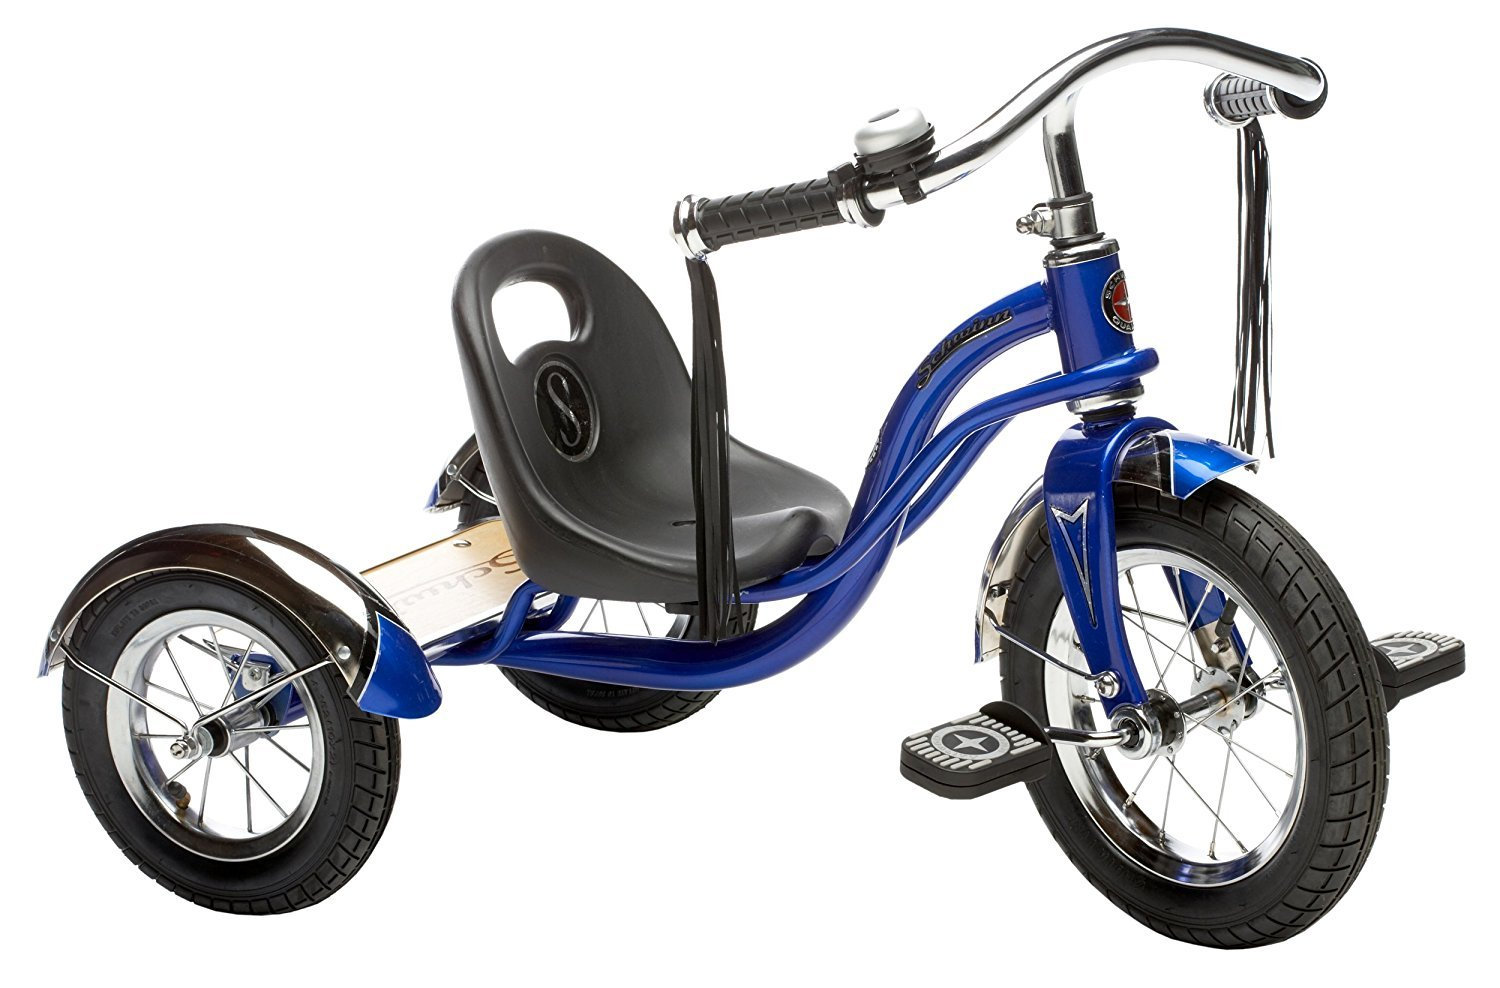 Schwinn-roadster-best-tricycle-for-kids-blue-12-inch